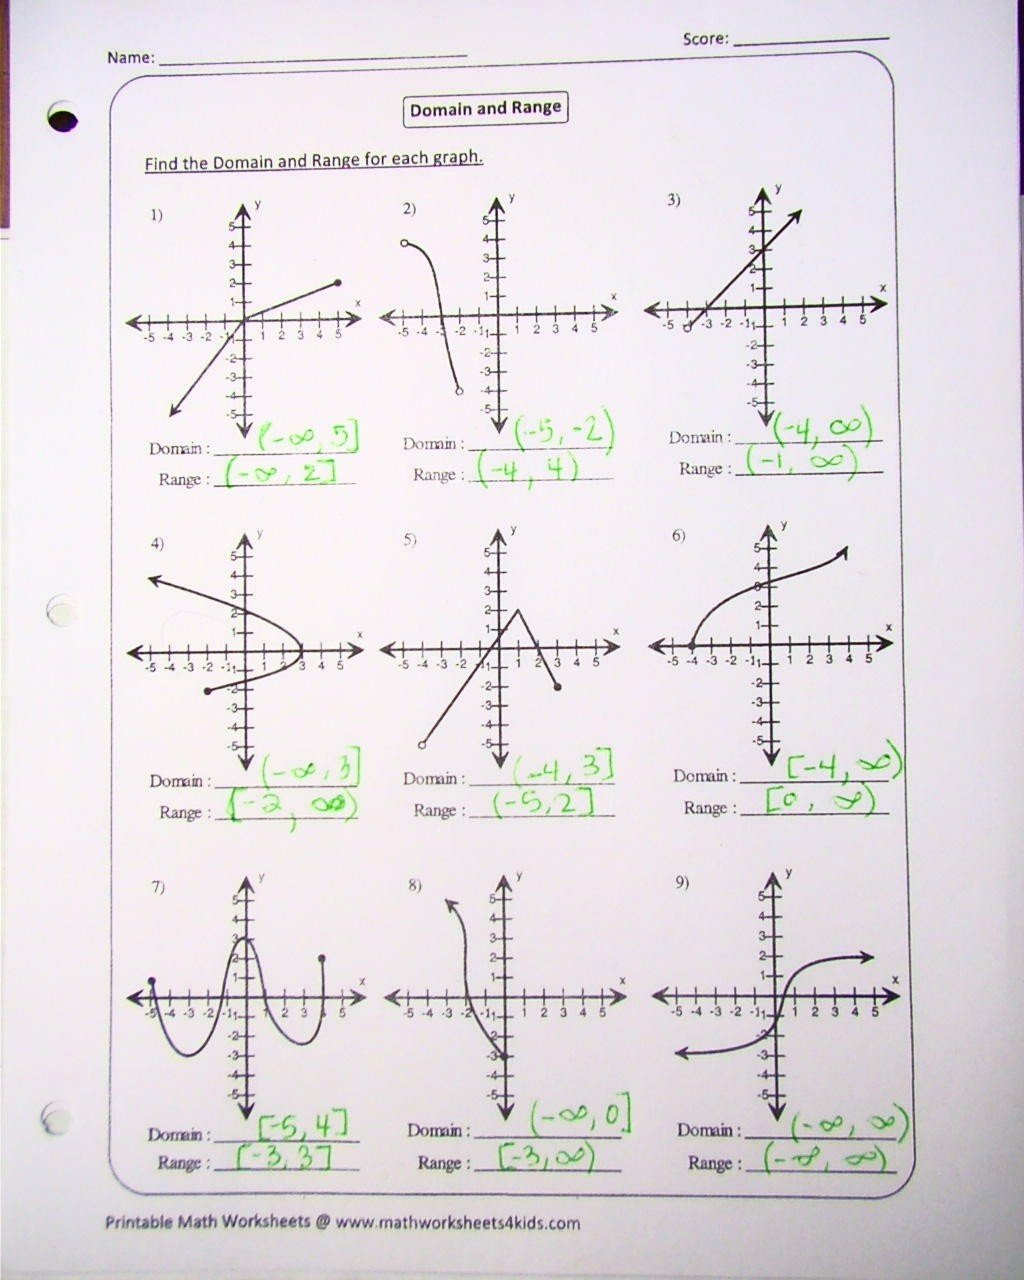 Domain and Range Worksheet 1 Beautiful Domain and Range Homework Worksheet Answers Breadandhearth